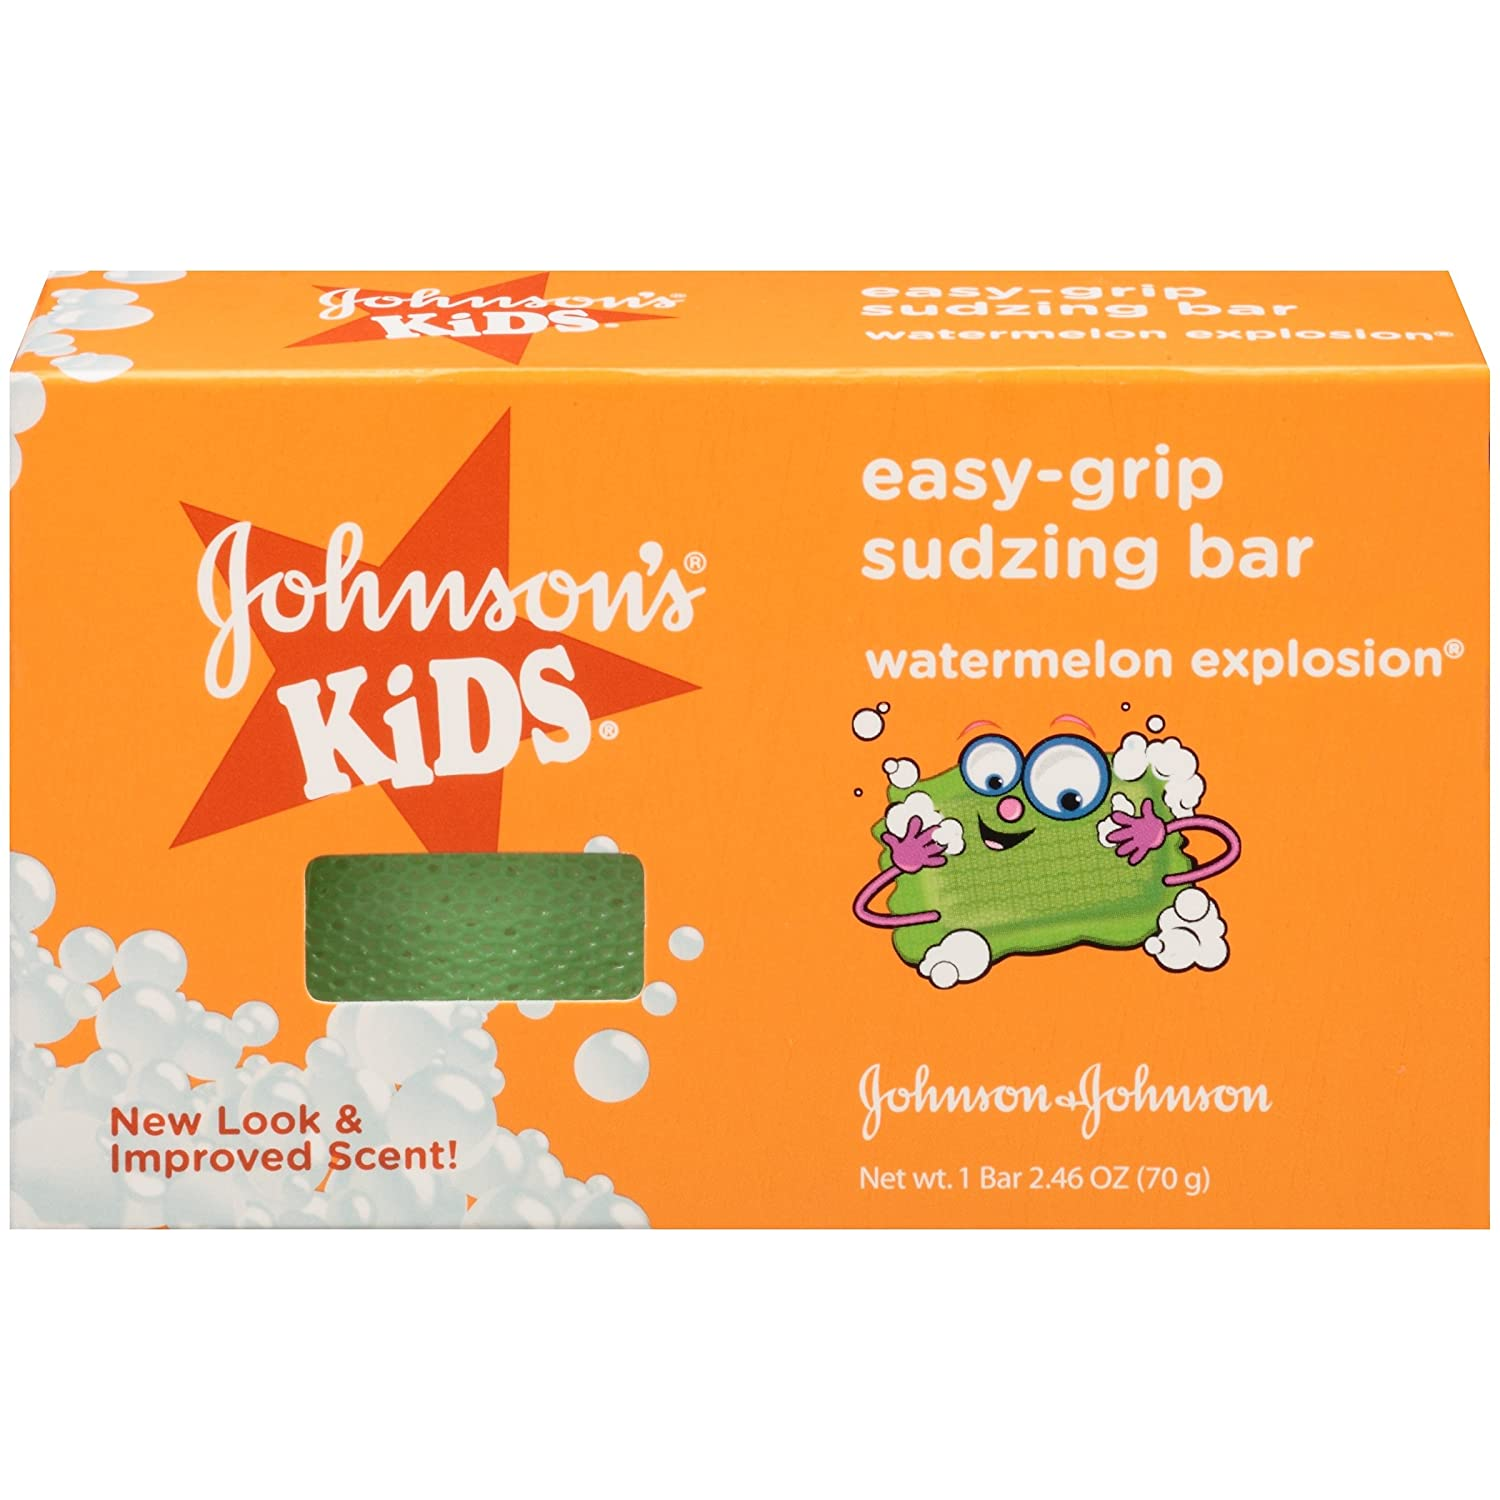 Johnson's Kids E-Z GRIP SOAP Watermelon Explosion, 2.46 Oz Johnson & Johnson - Ketotifen 381371154111